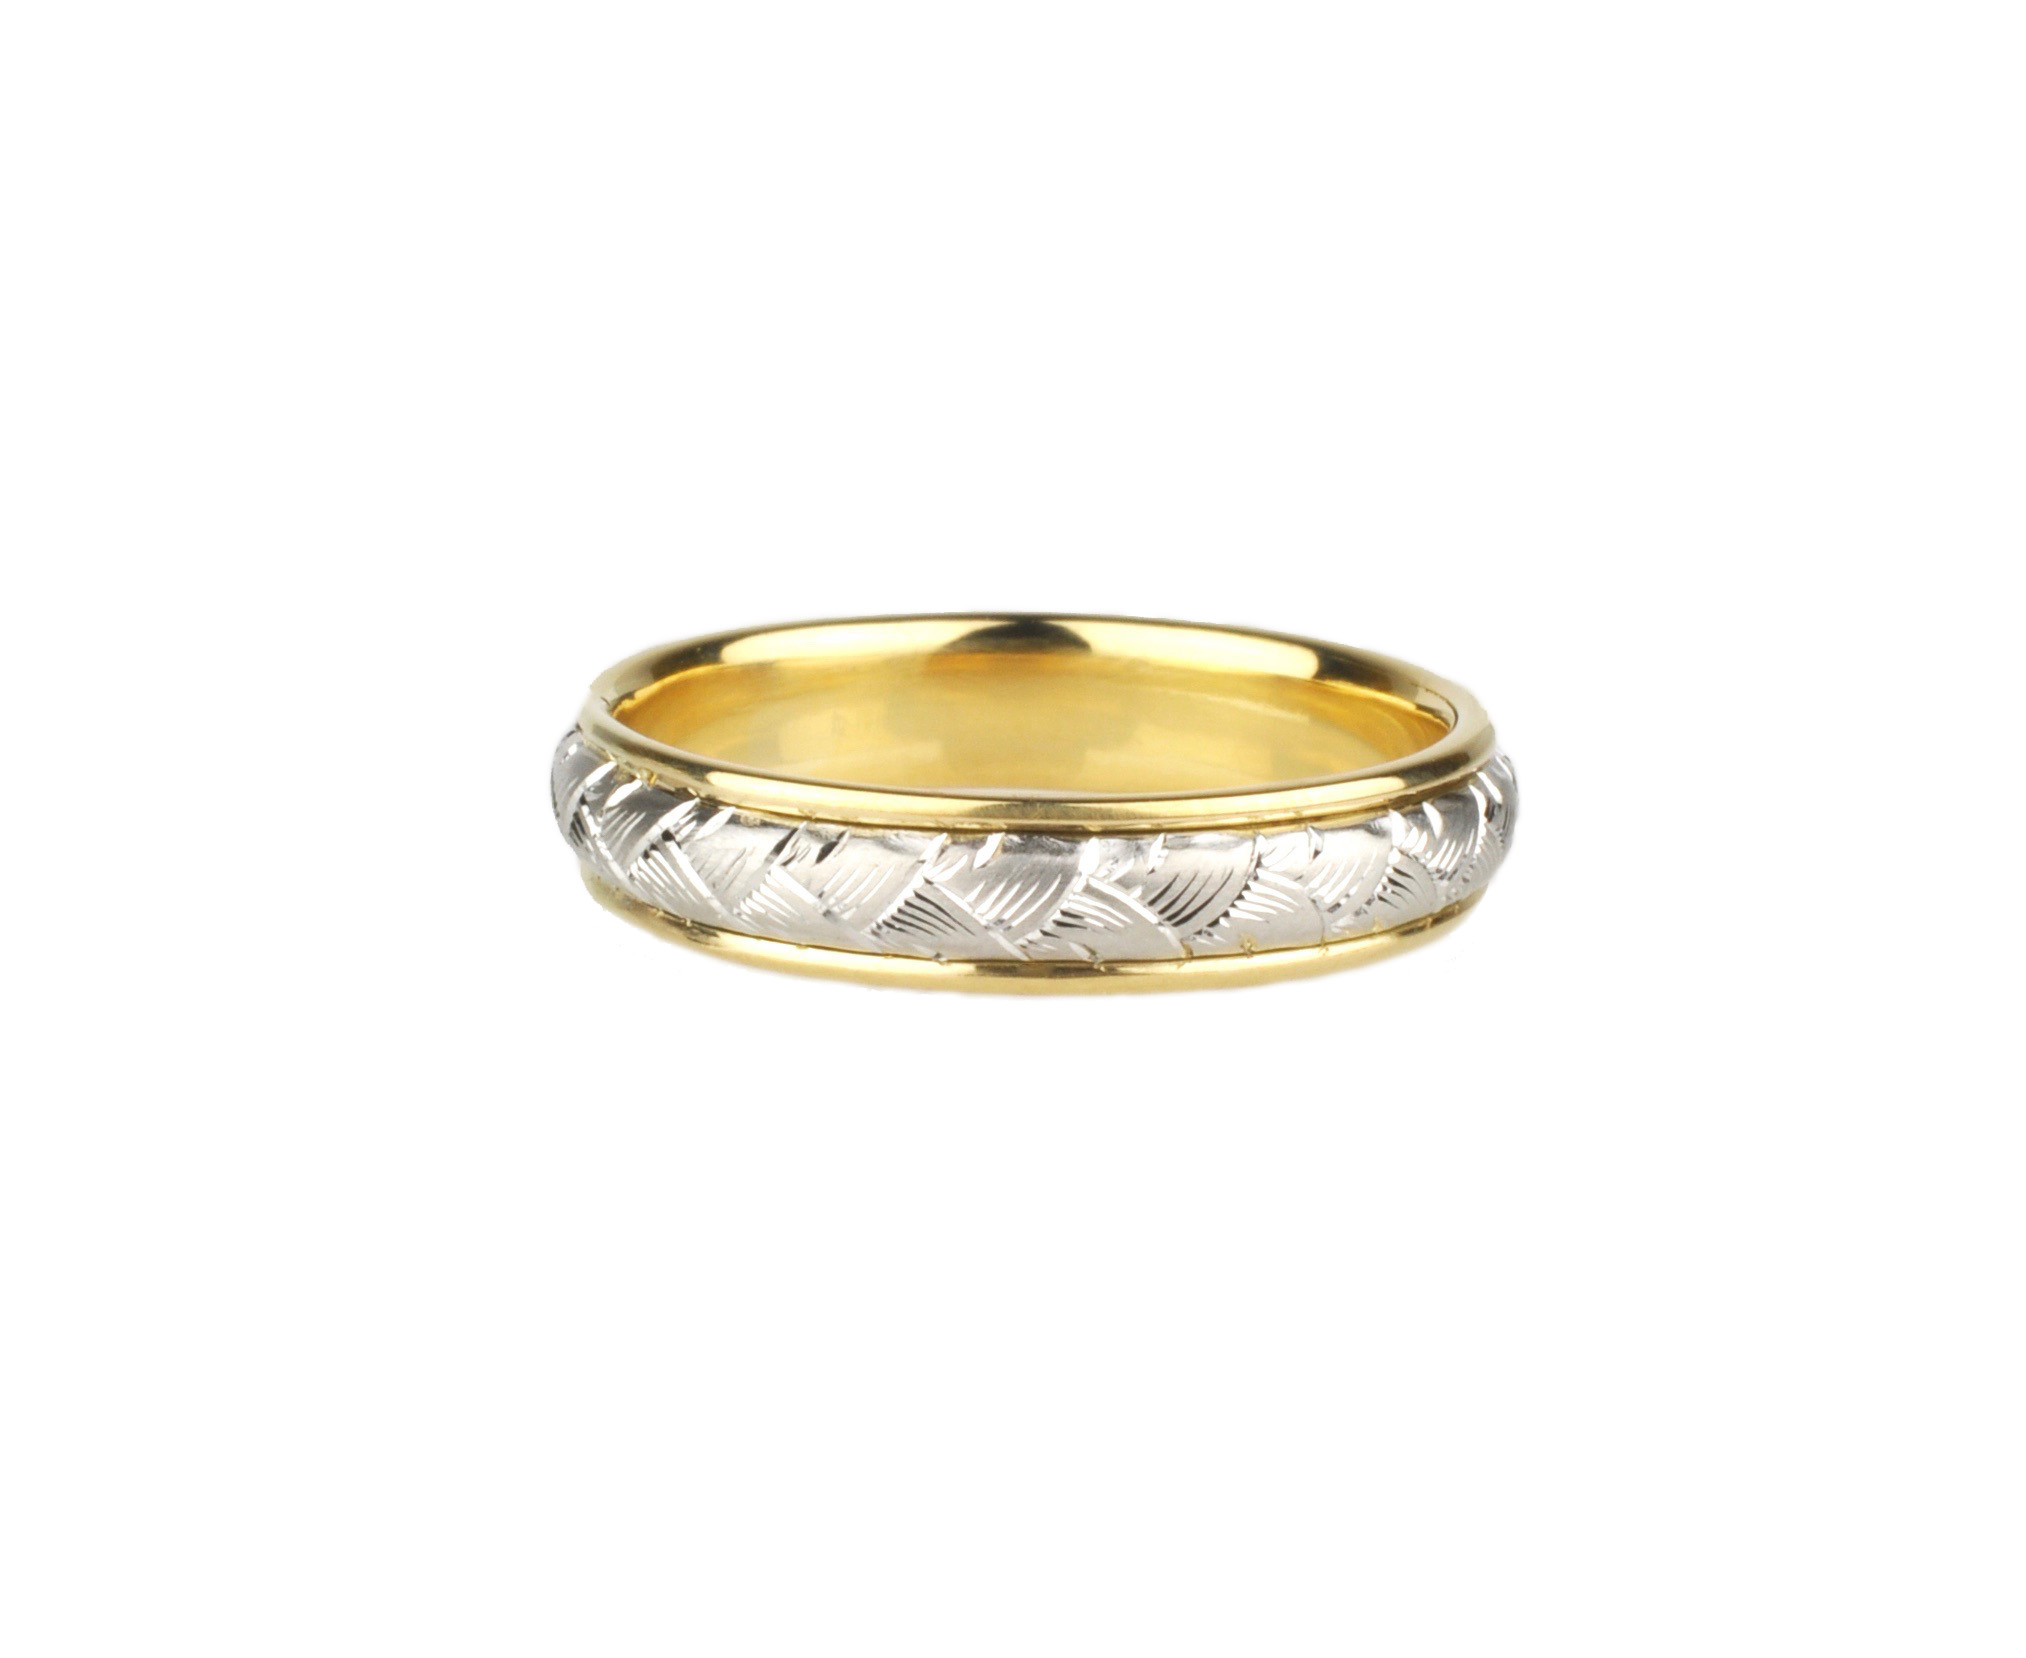 Hand Engraved Platinum and 18k Gold Band